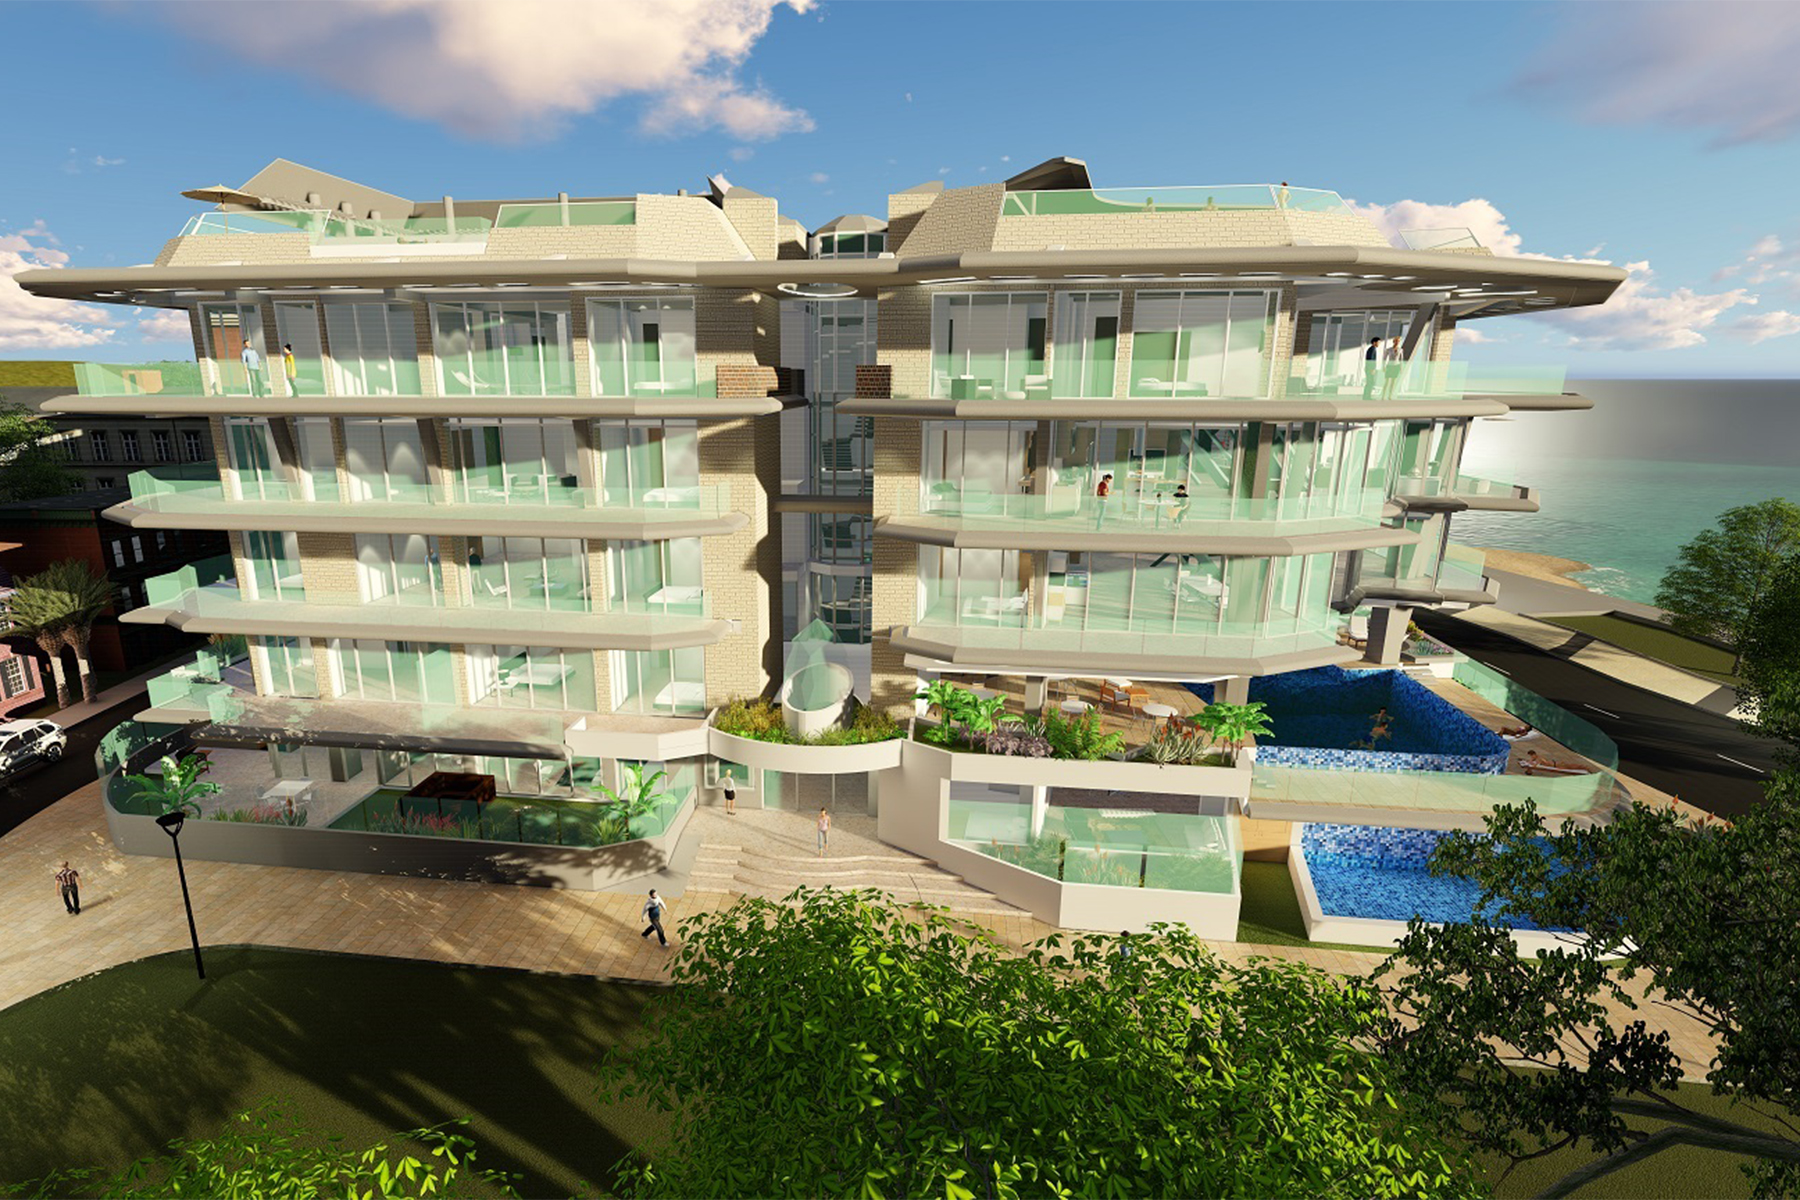 Additional photo for property listing at Coral Shell 3 bedroom Luxury unit Oranjestad, 阿鲁巴 阿鲁巴岛